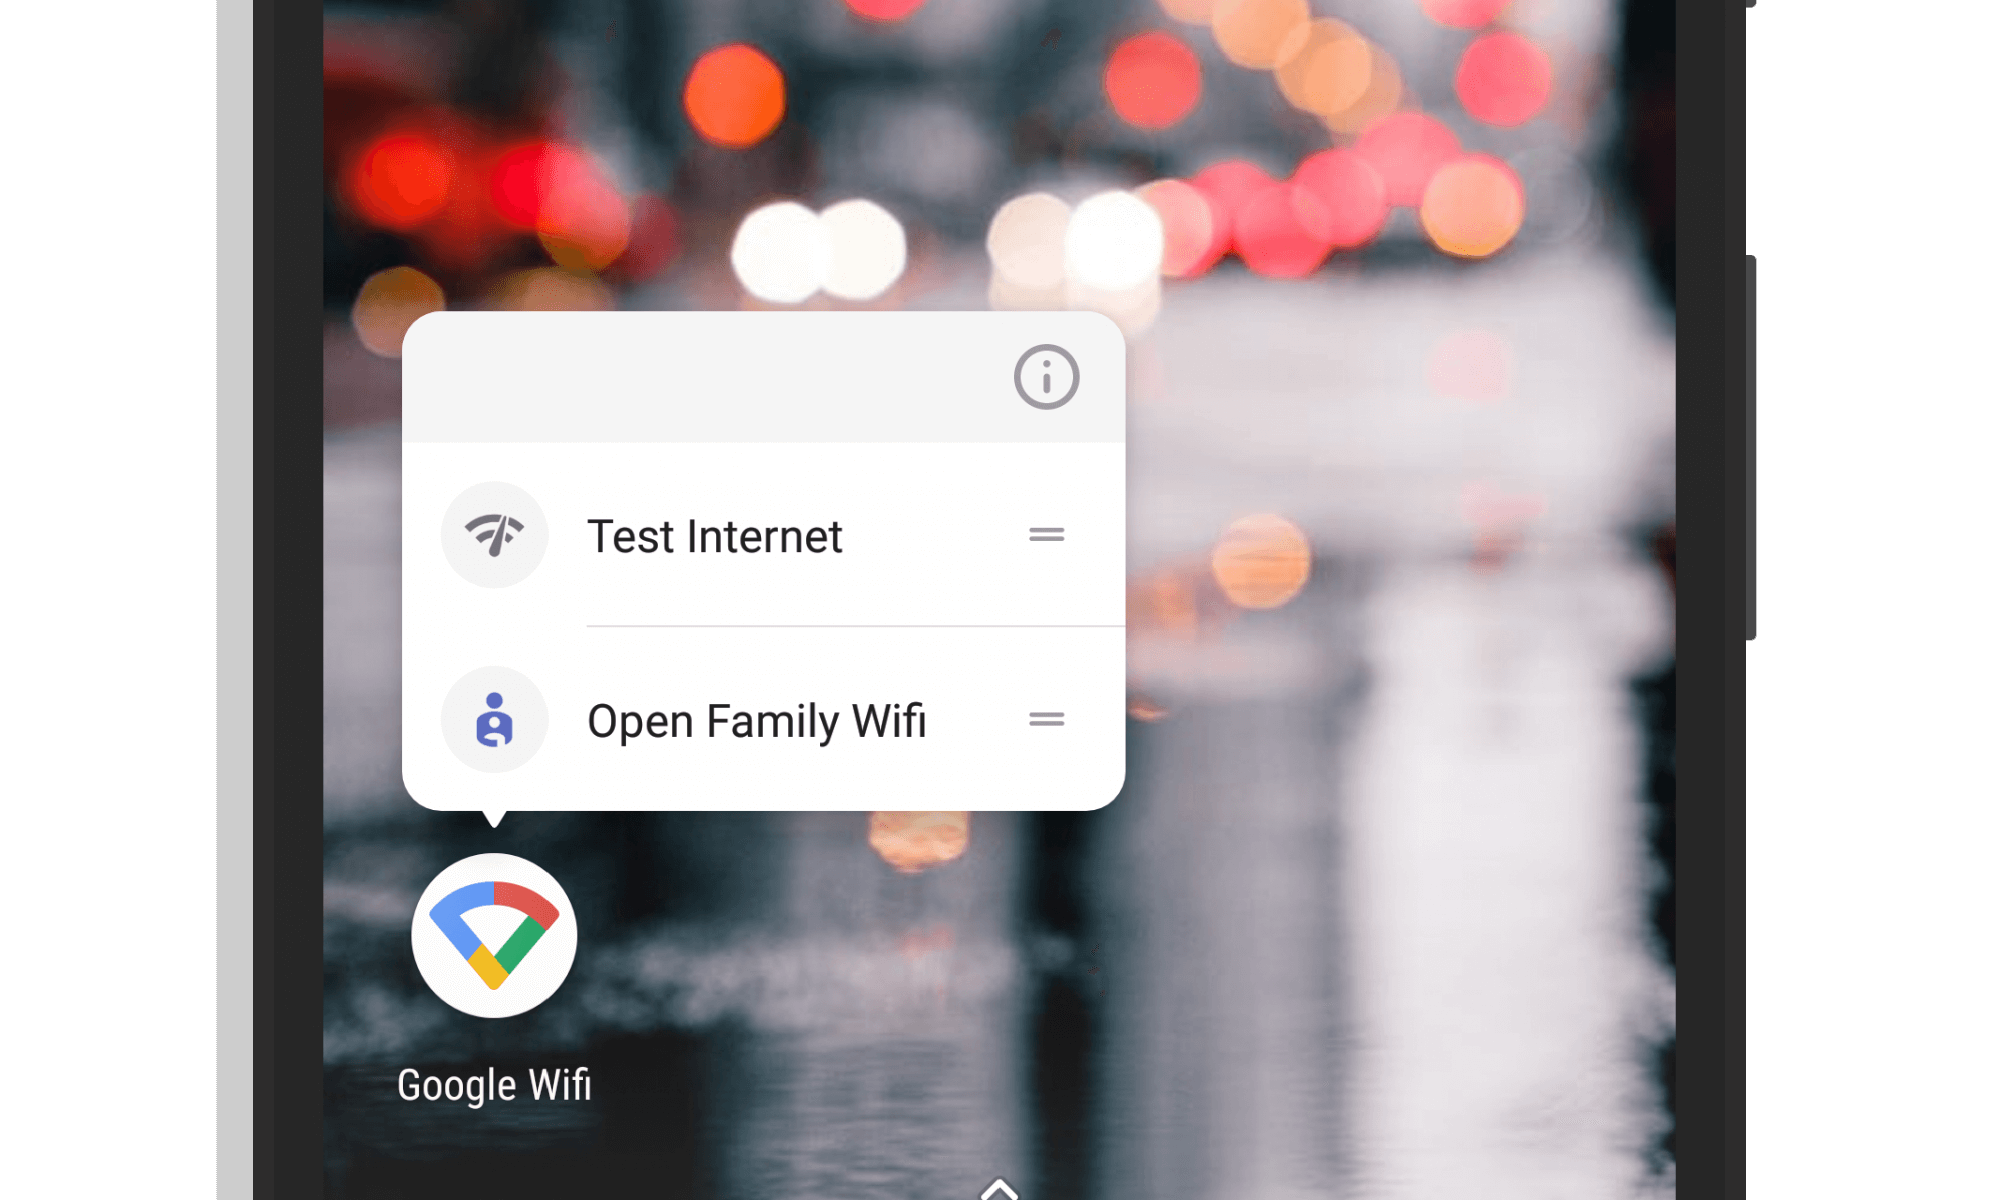 App Shortcuts in Google WiFi